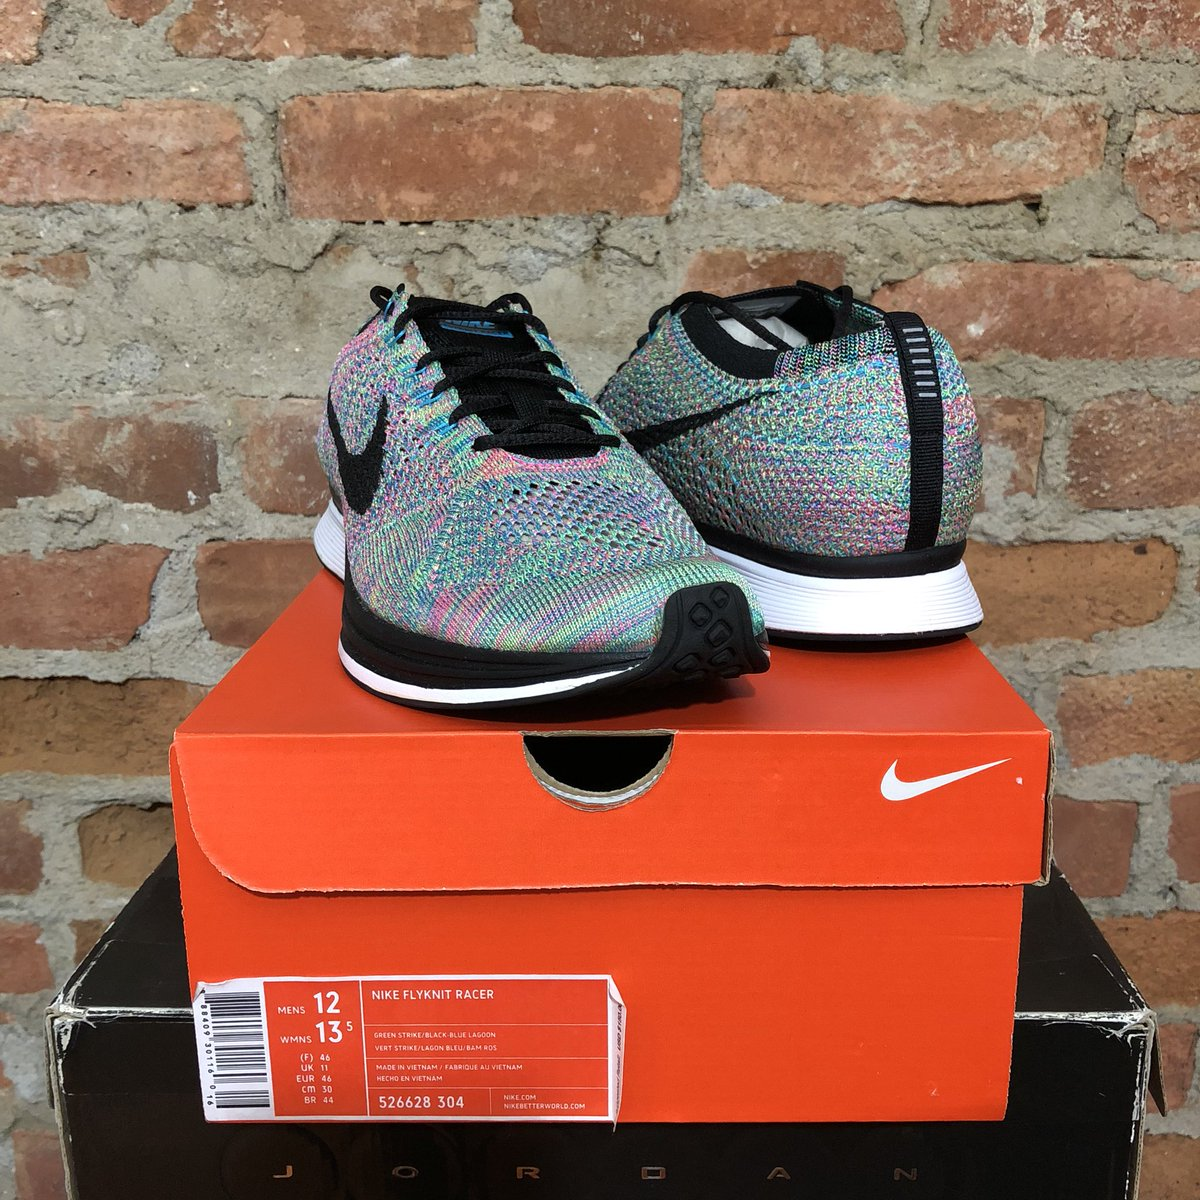 561d37d17ab87 ... order ds nike flyknit racer 2017 multicolor size 12 135 shipped dm to  purchase rts appreciatedpic ...